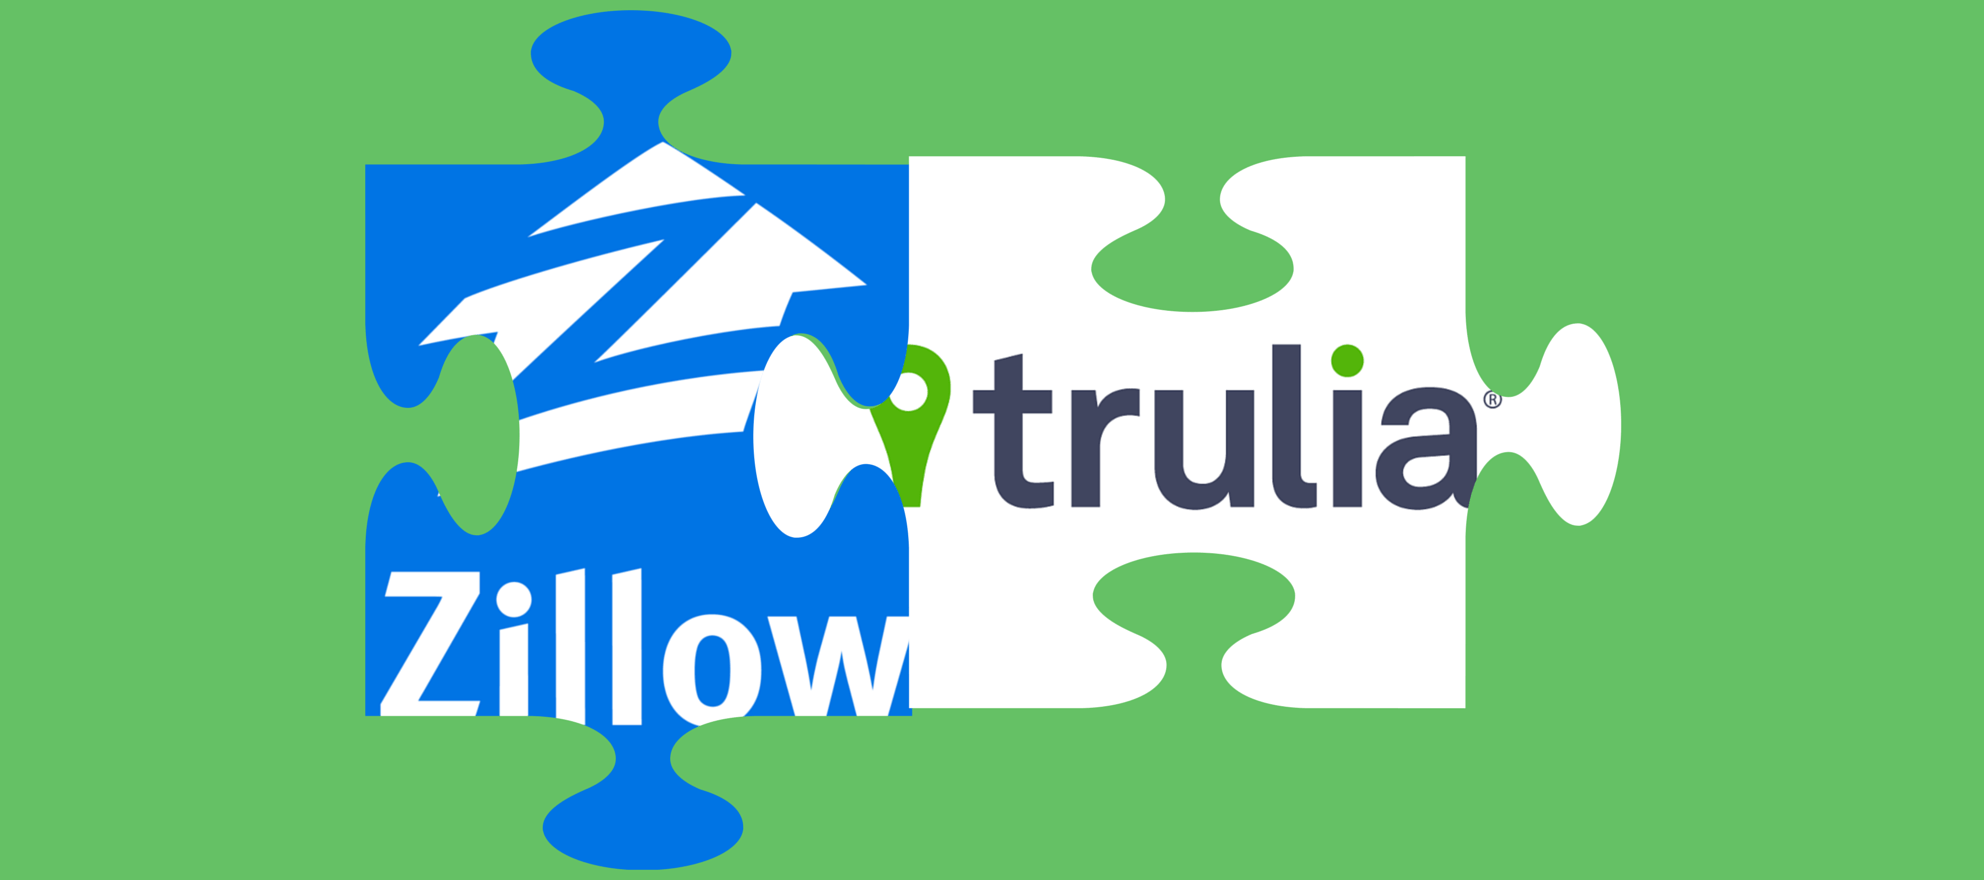 FTC may approve Zillow-Trulia deal sooner than expected